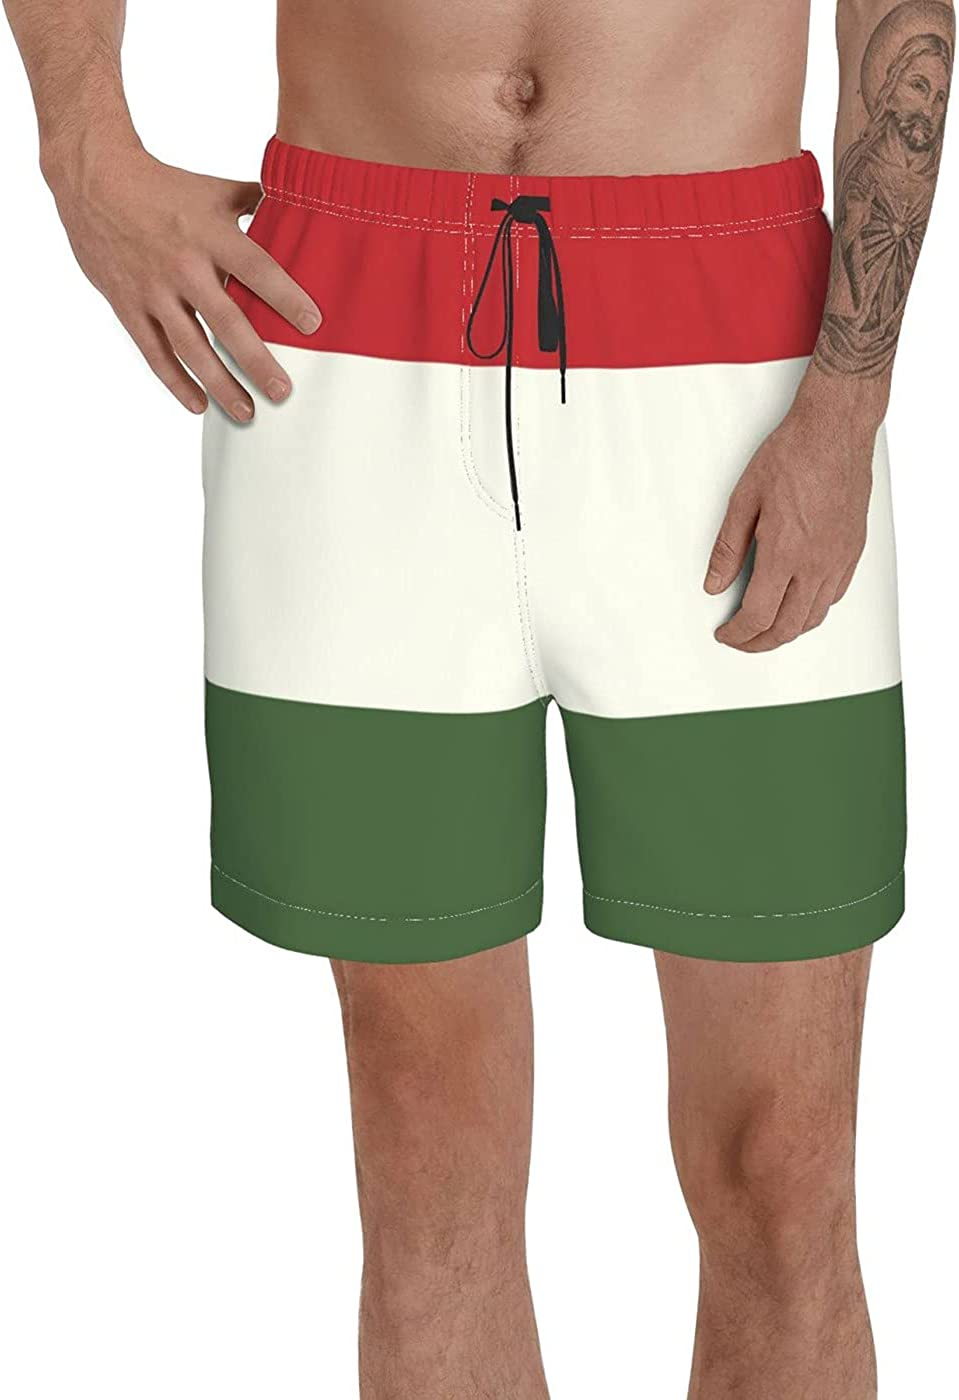 Count Hungary Flag Men's 3D Printed Funny Summer Quick Dry Swim Short Board Shorts with